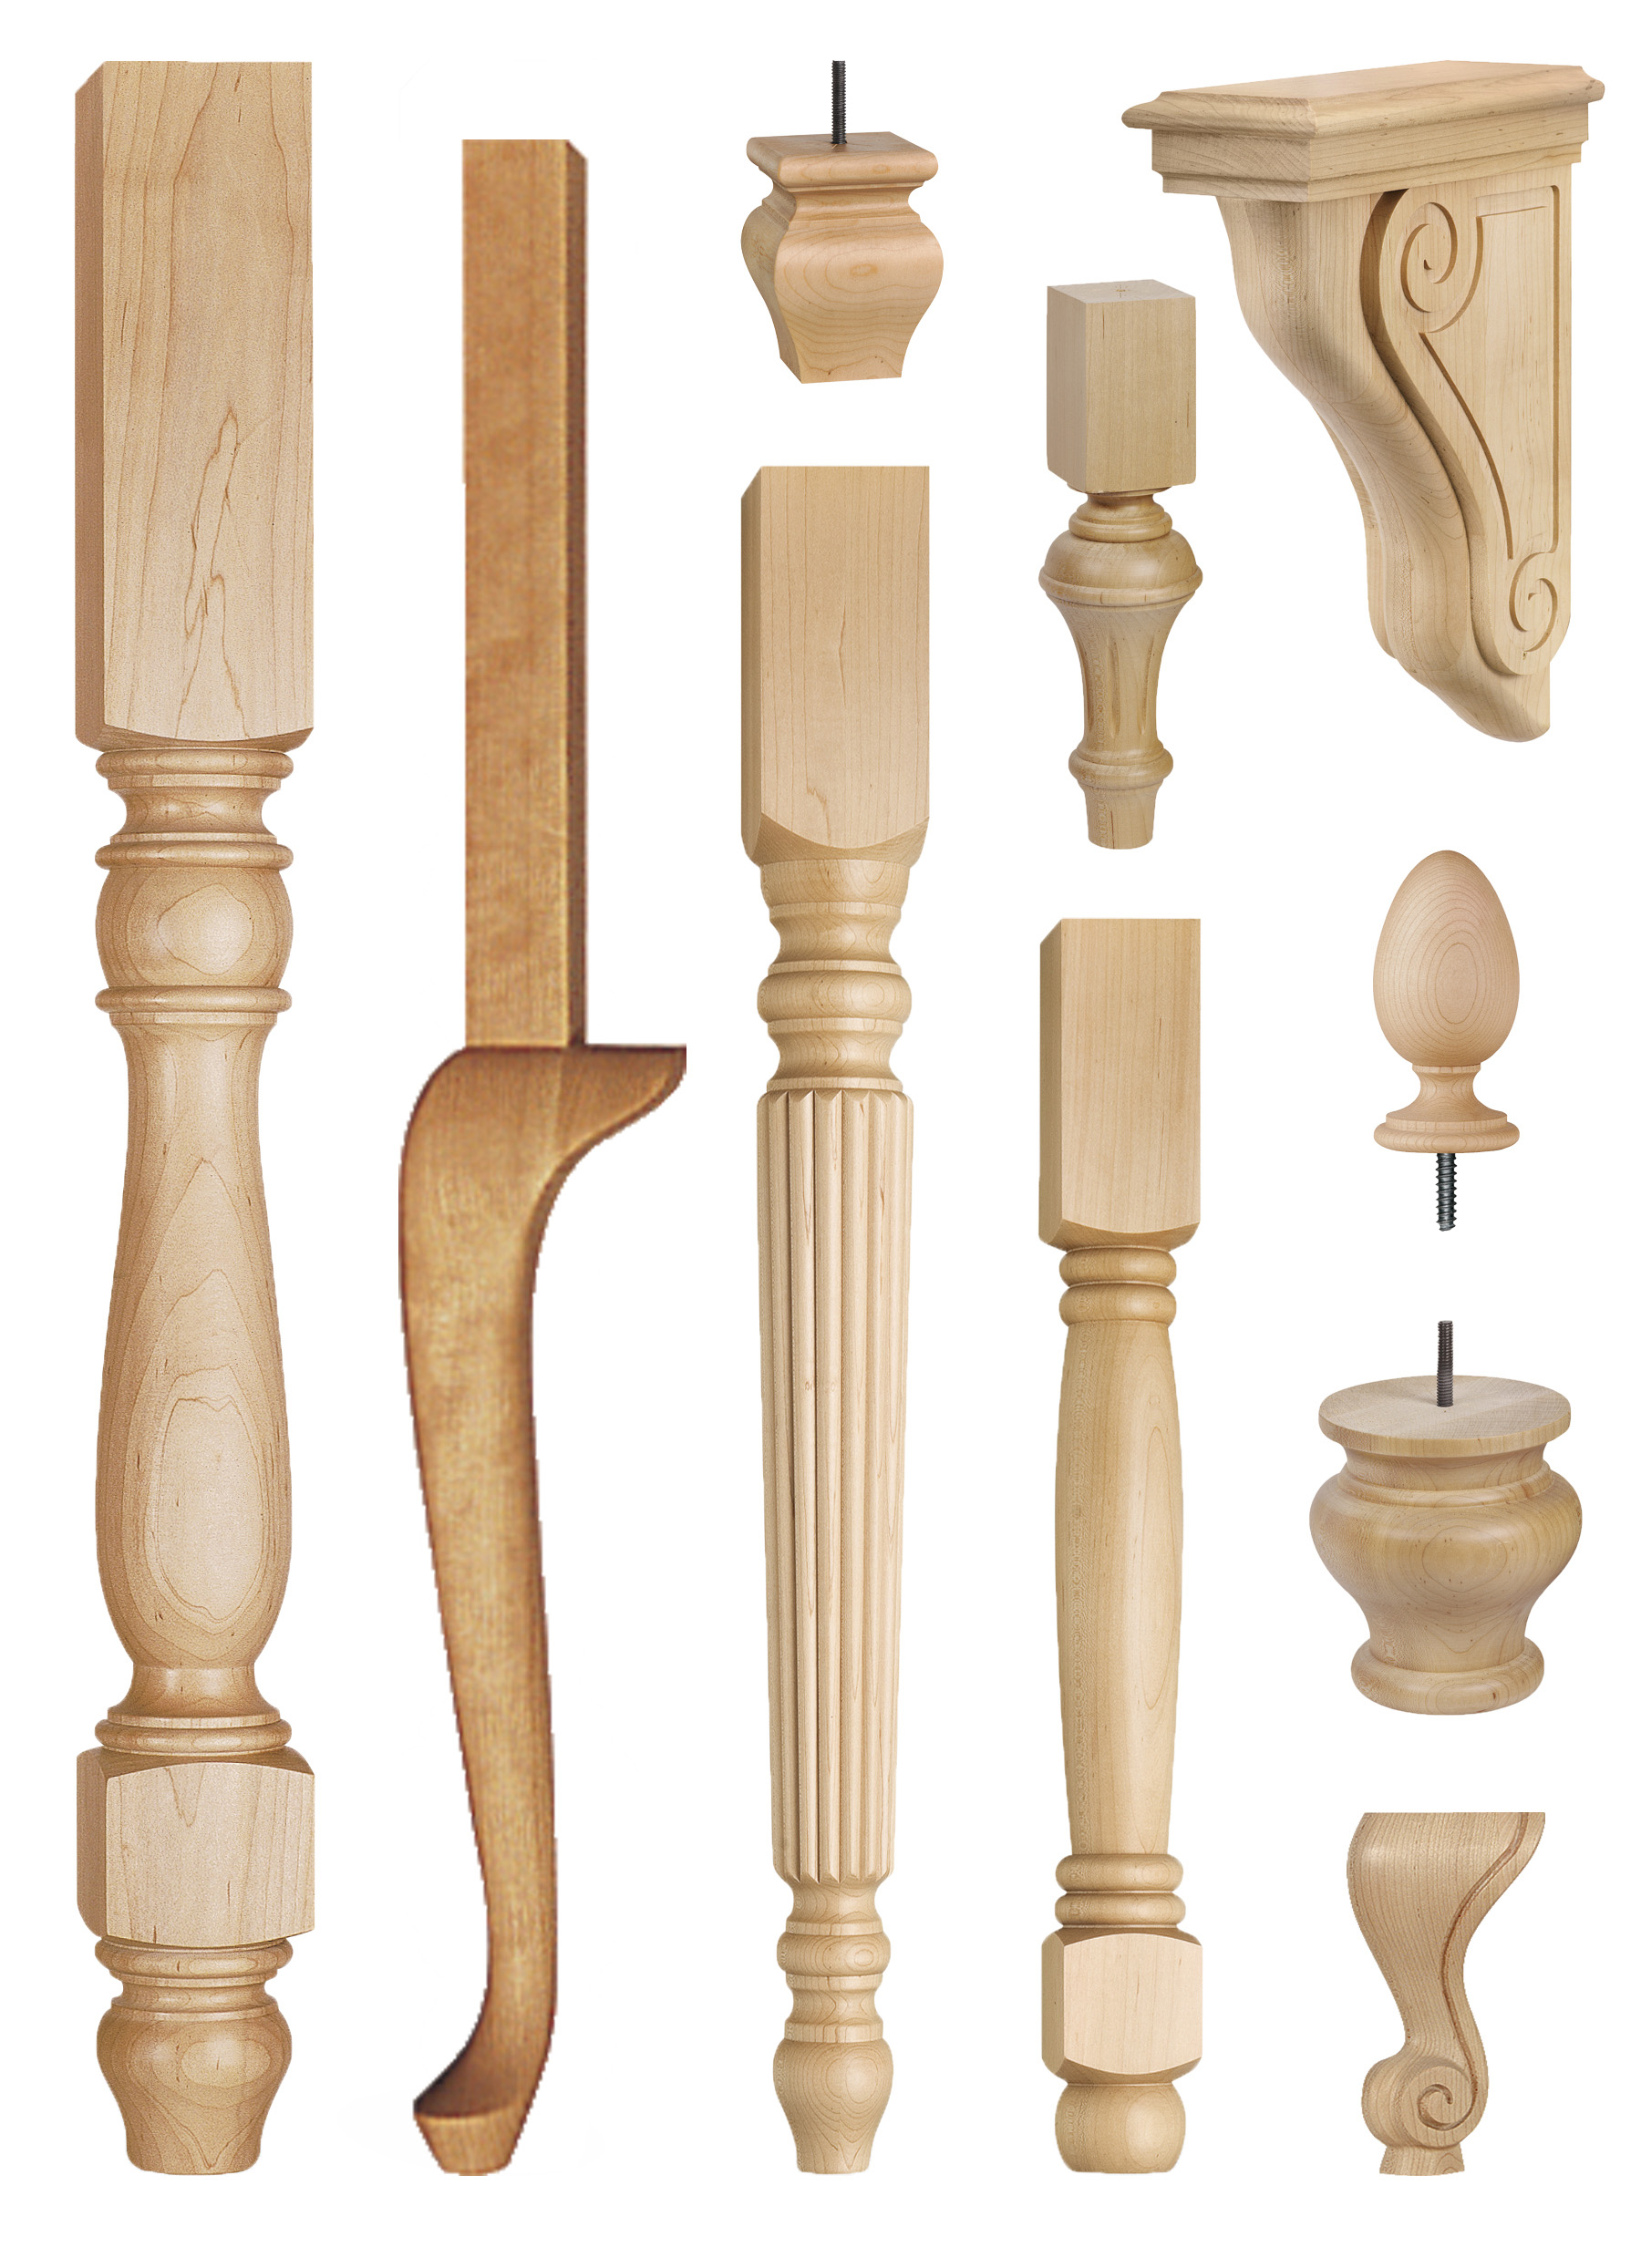 Fullsize Of Adams Wood Products